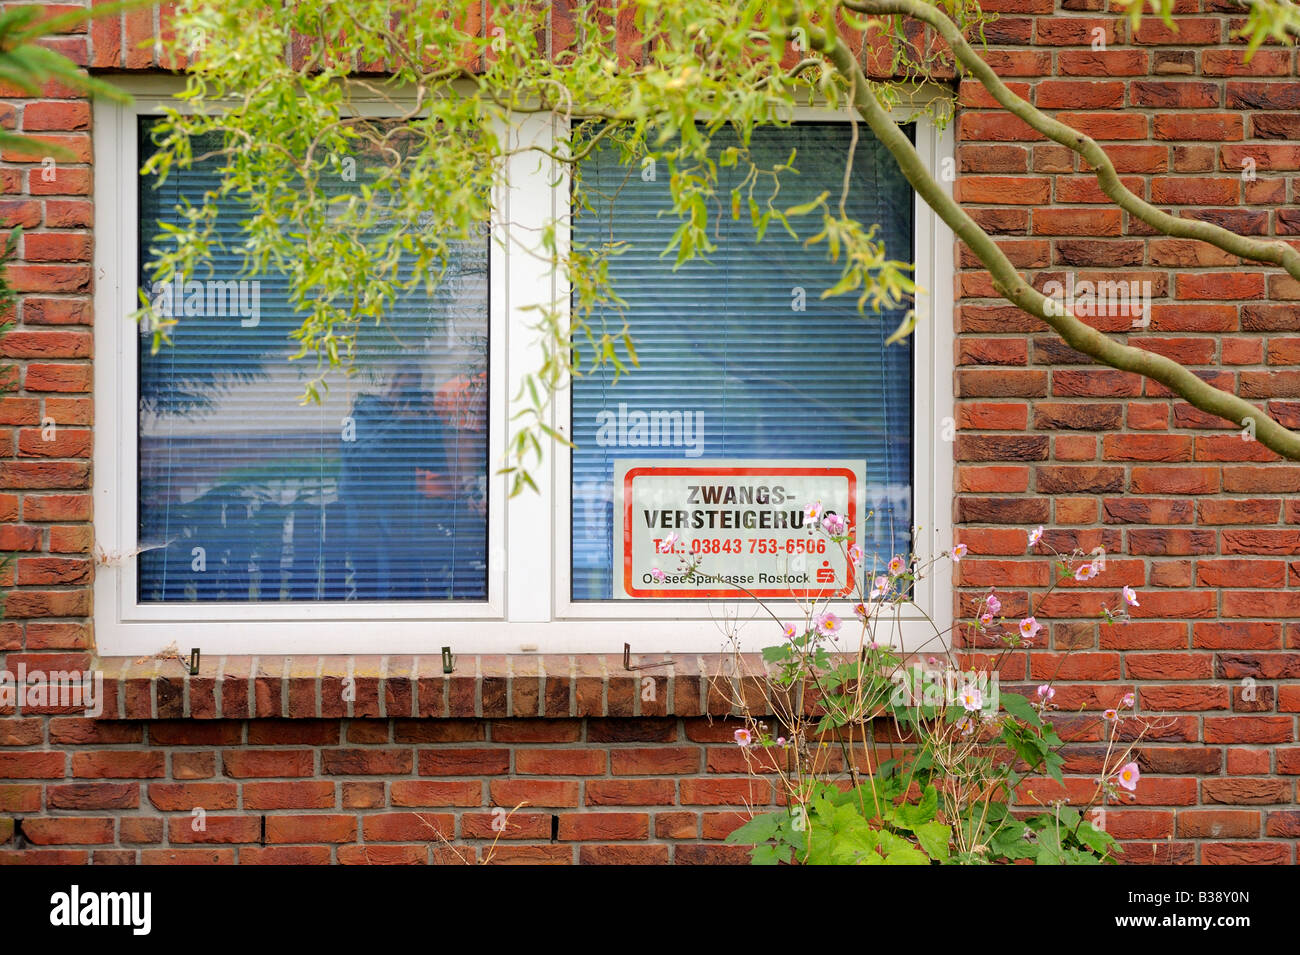 auction sale of a house in Germany - Stock Image